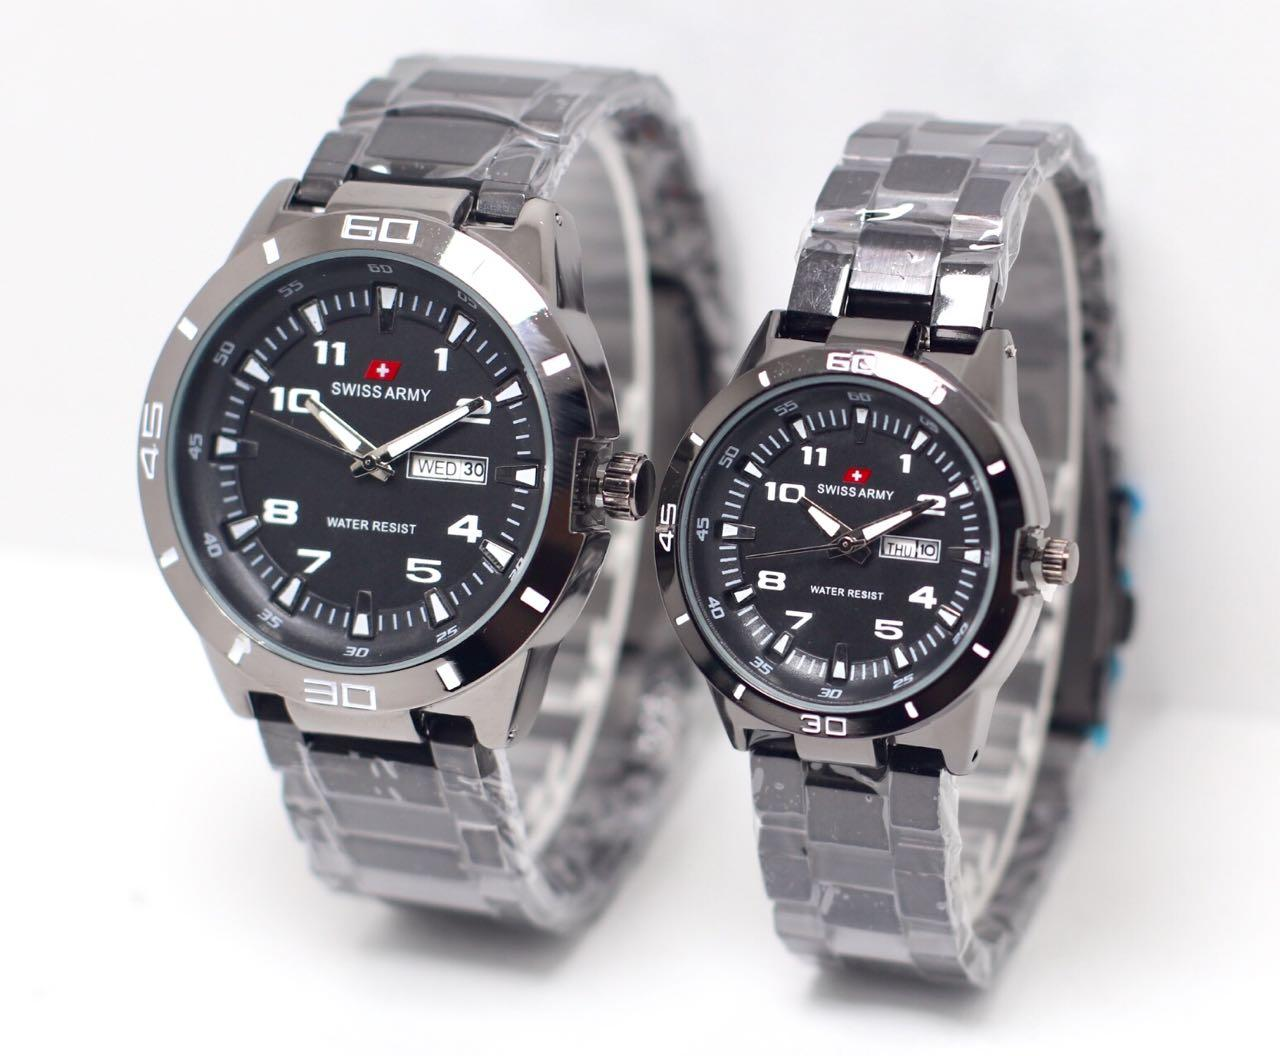 Swiss Army SA5099M New Limited Edition - Jam Tangan Couple - Stainlesstell Strap [Hitam]